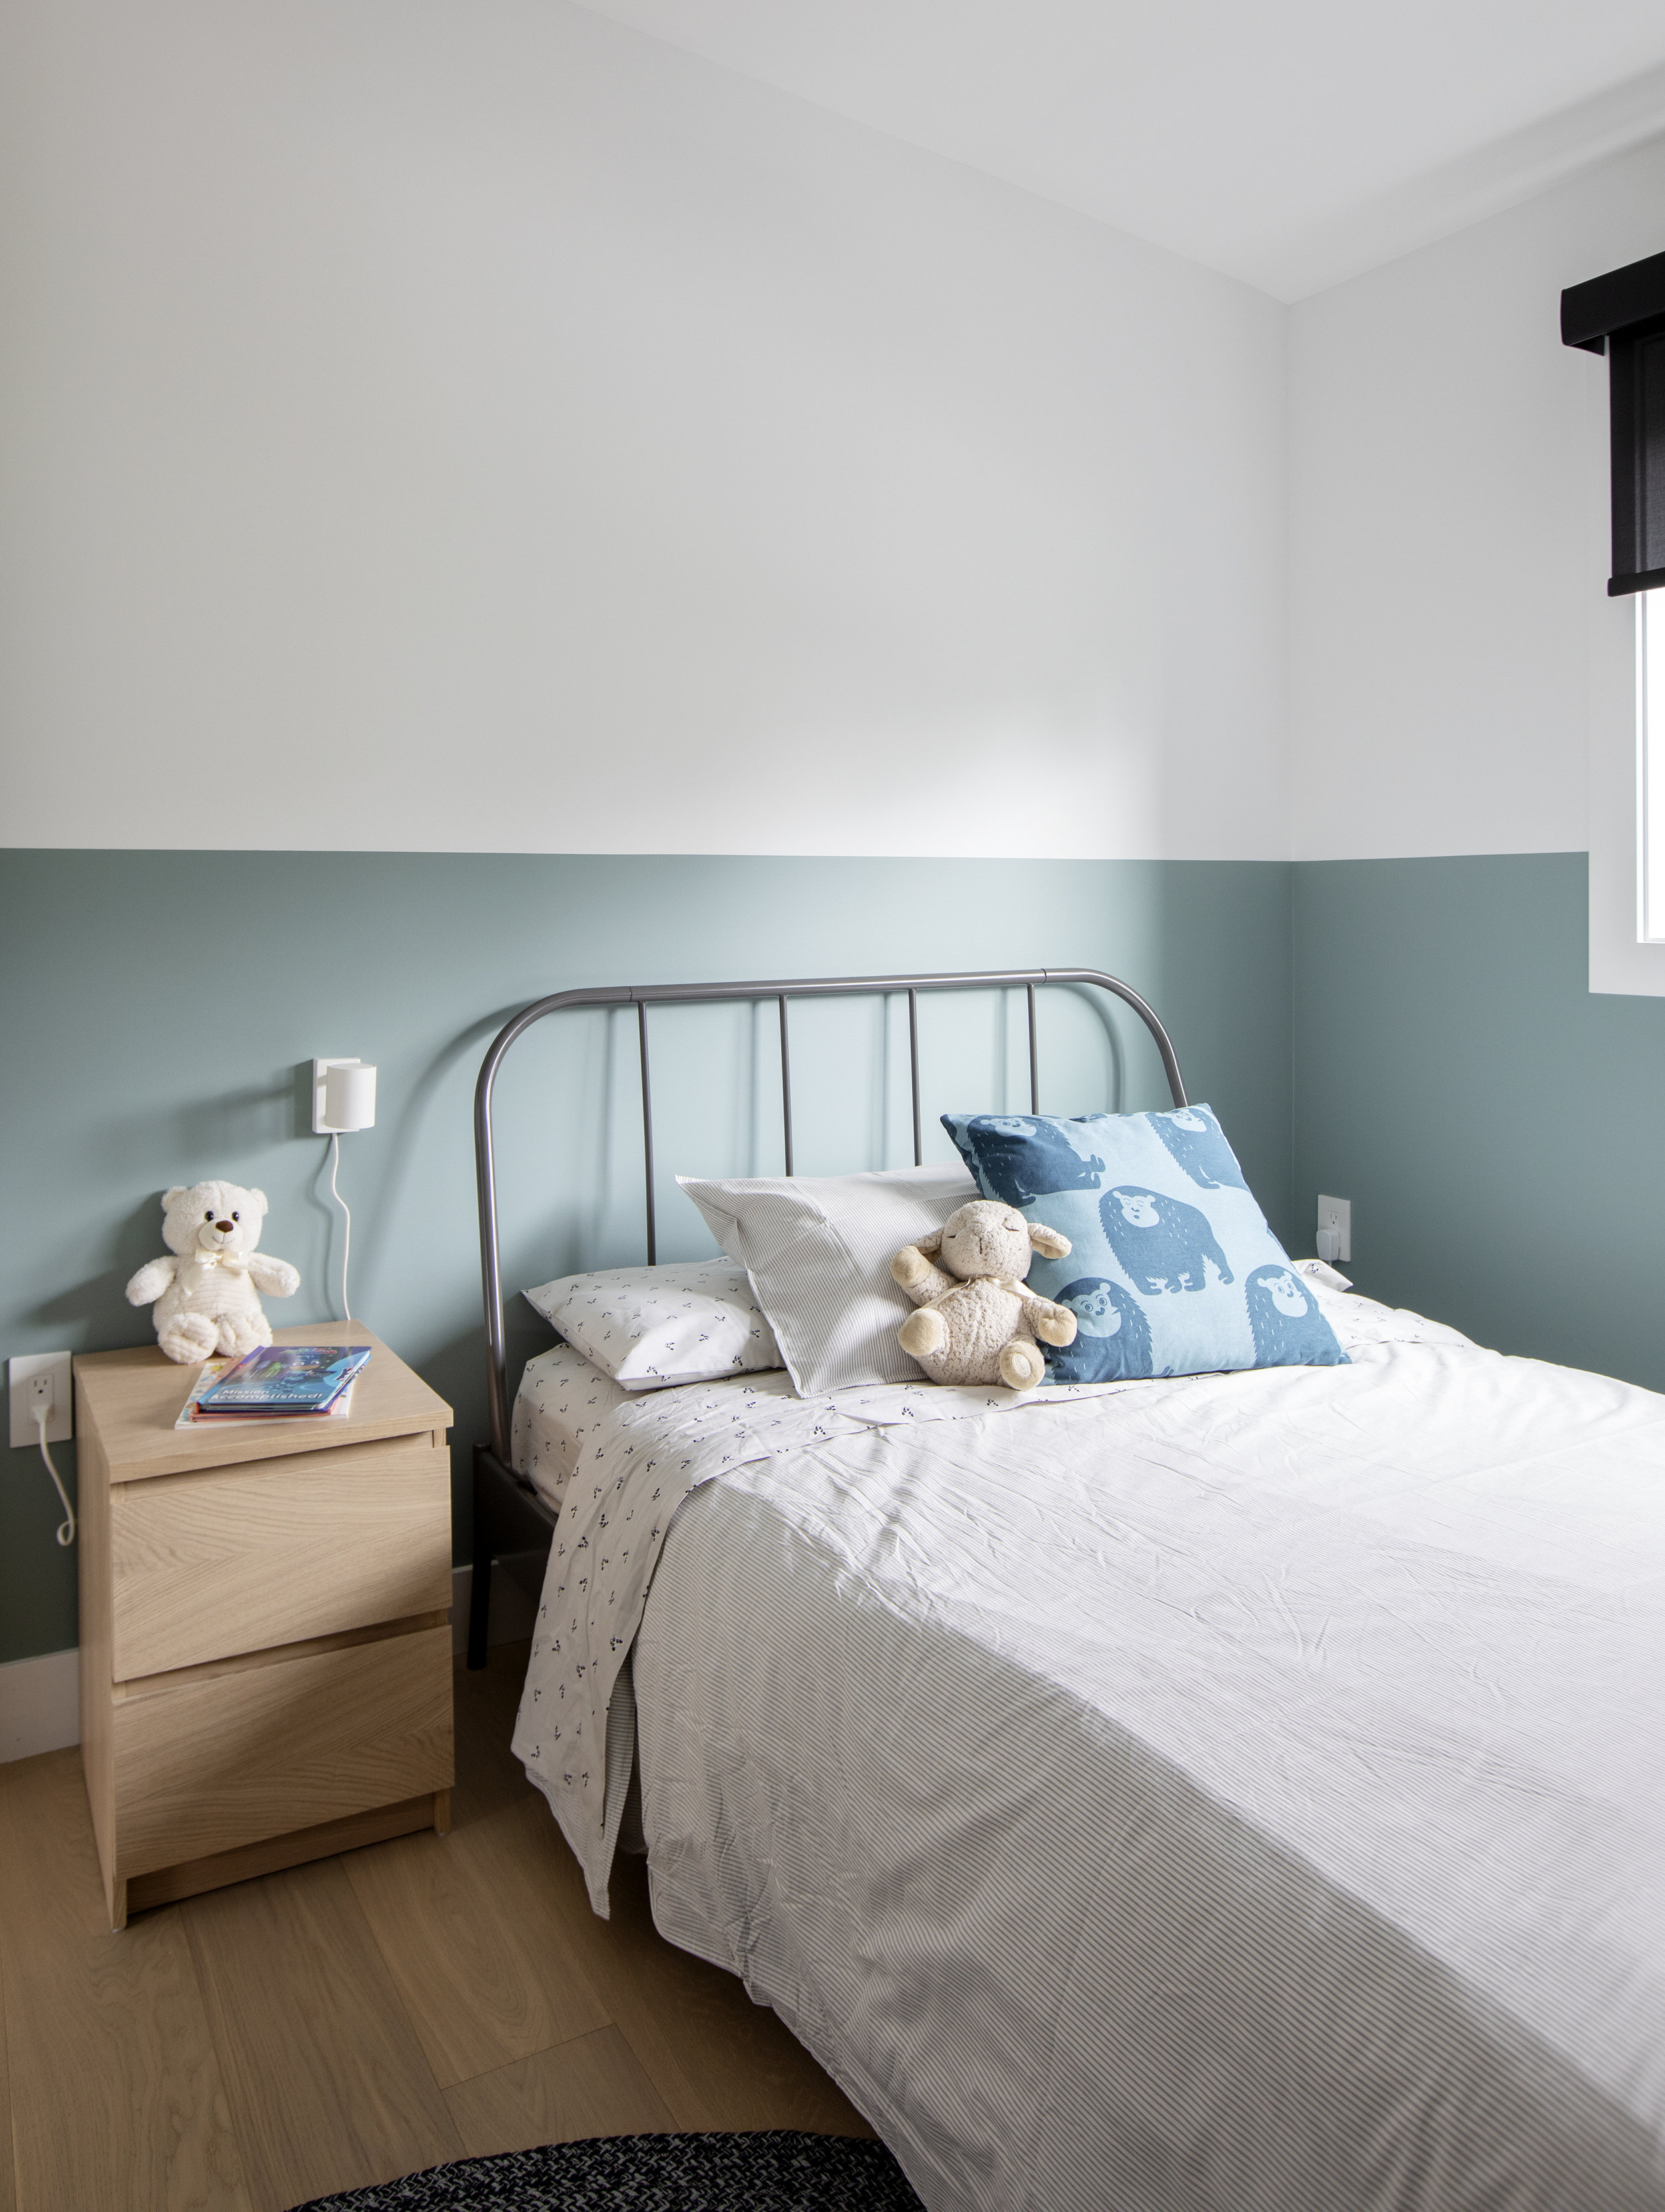 A third child's bedroom in East 13th street has walls where the top is painted white and bottom in blue. A steel twin bed sits in the corner.